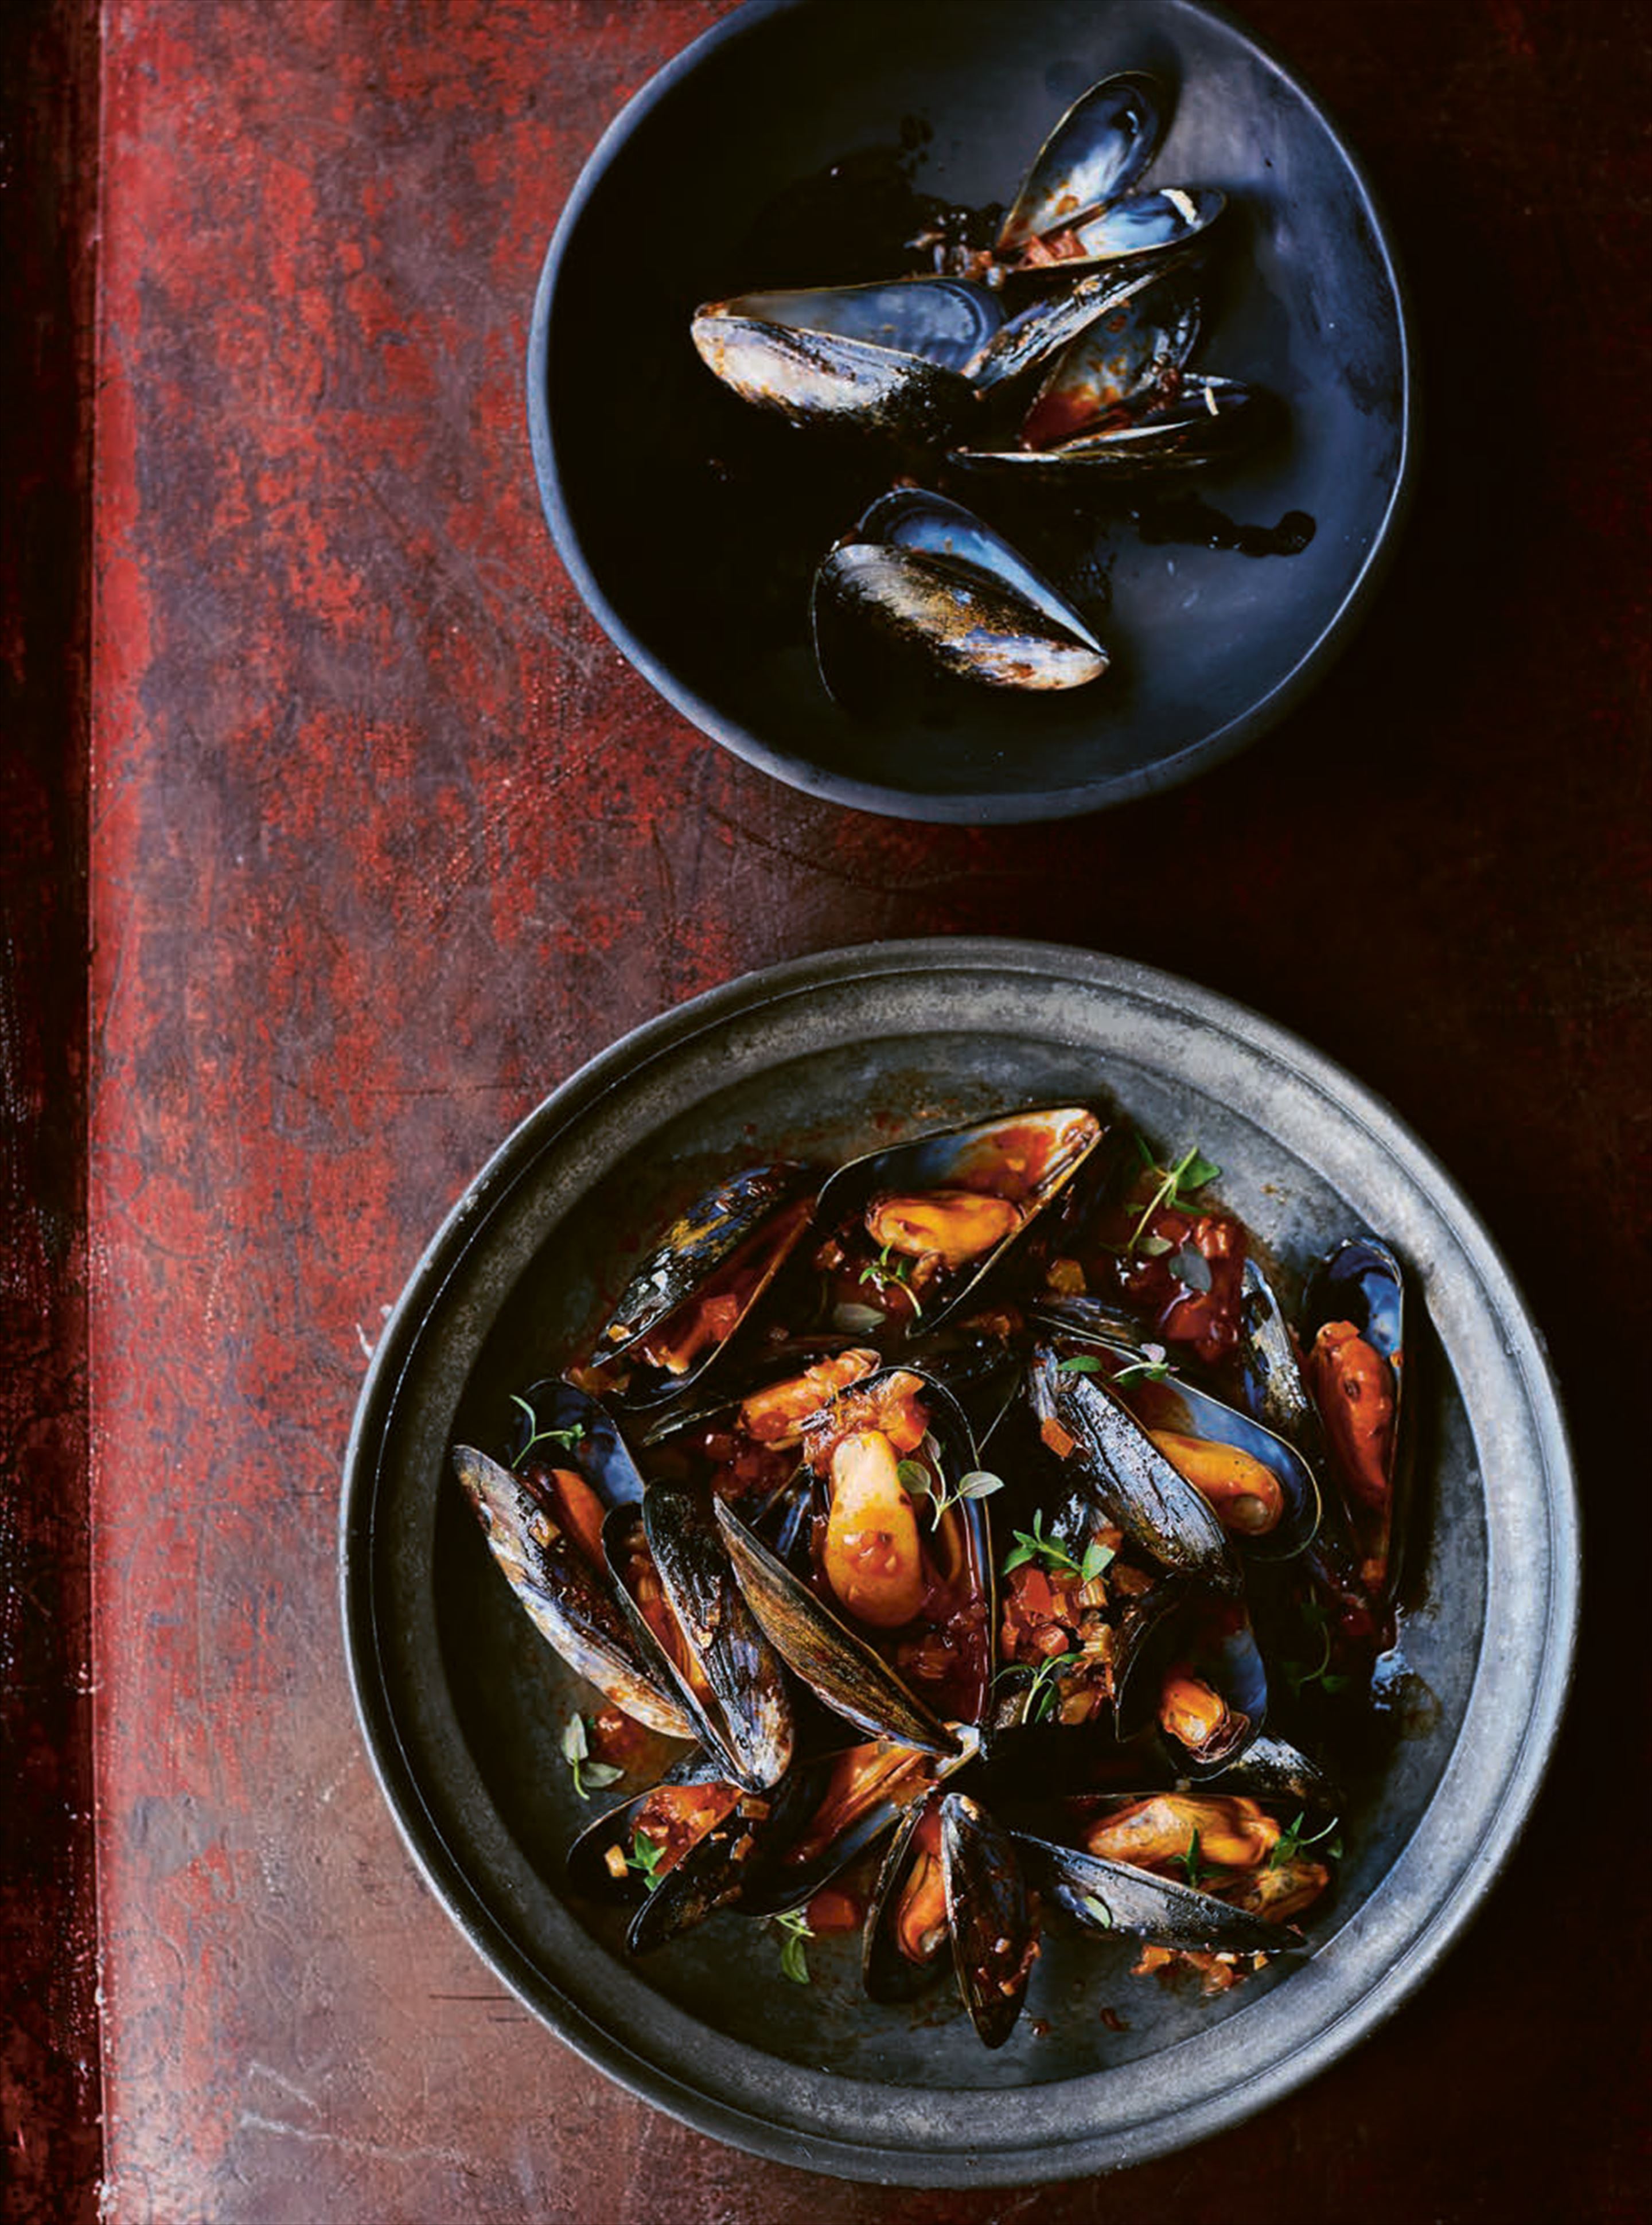 Mussels in escabeche